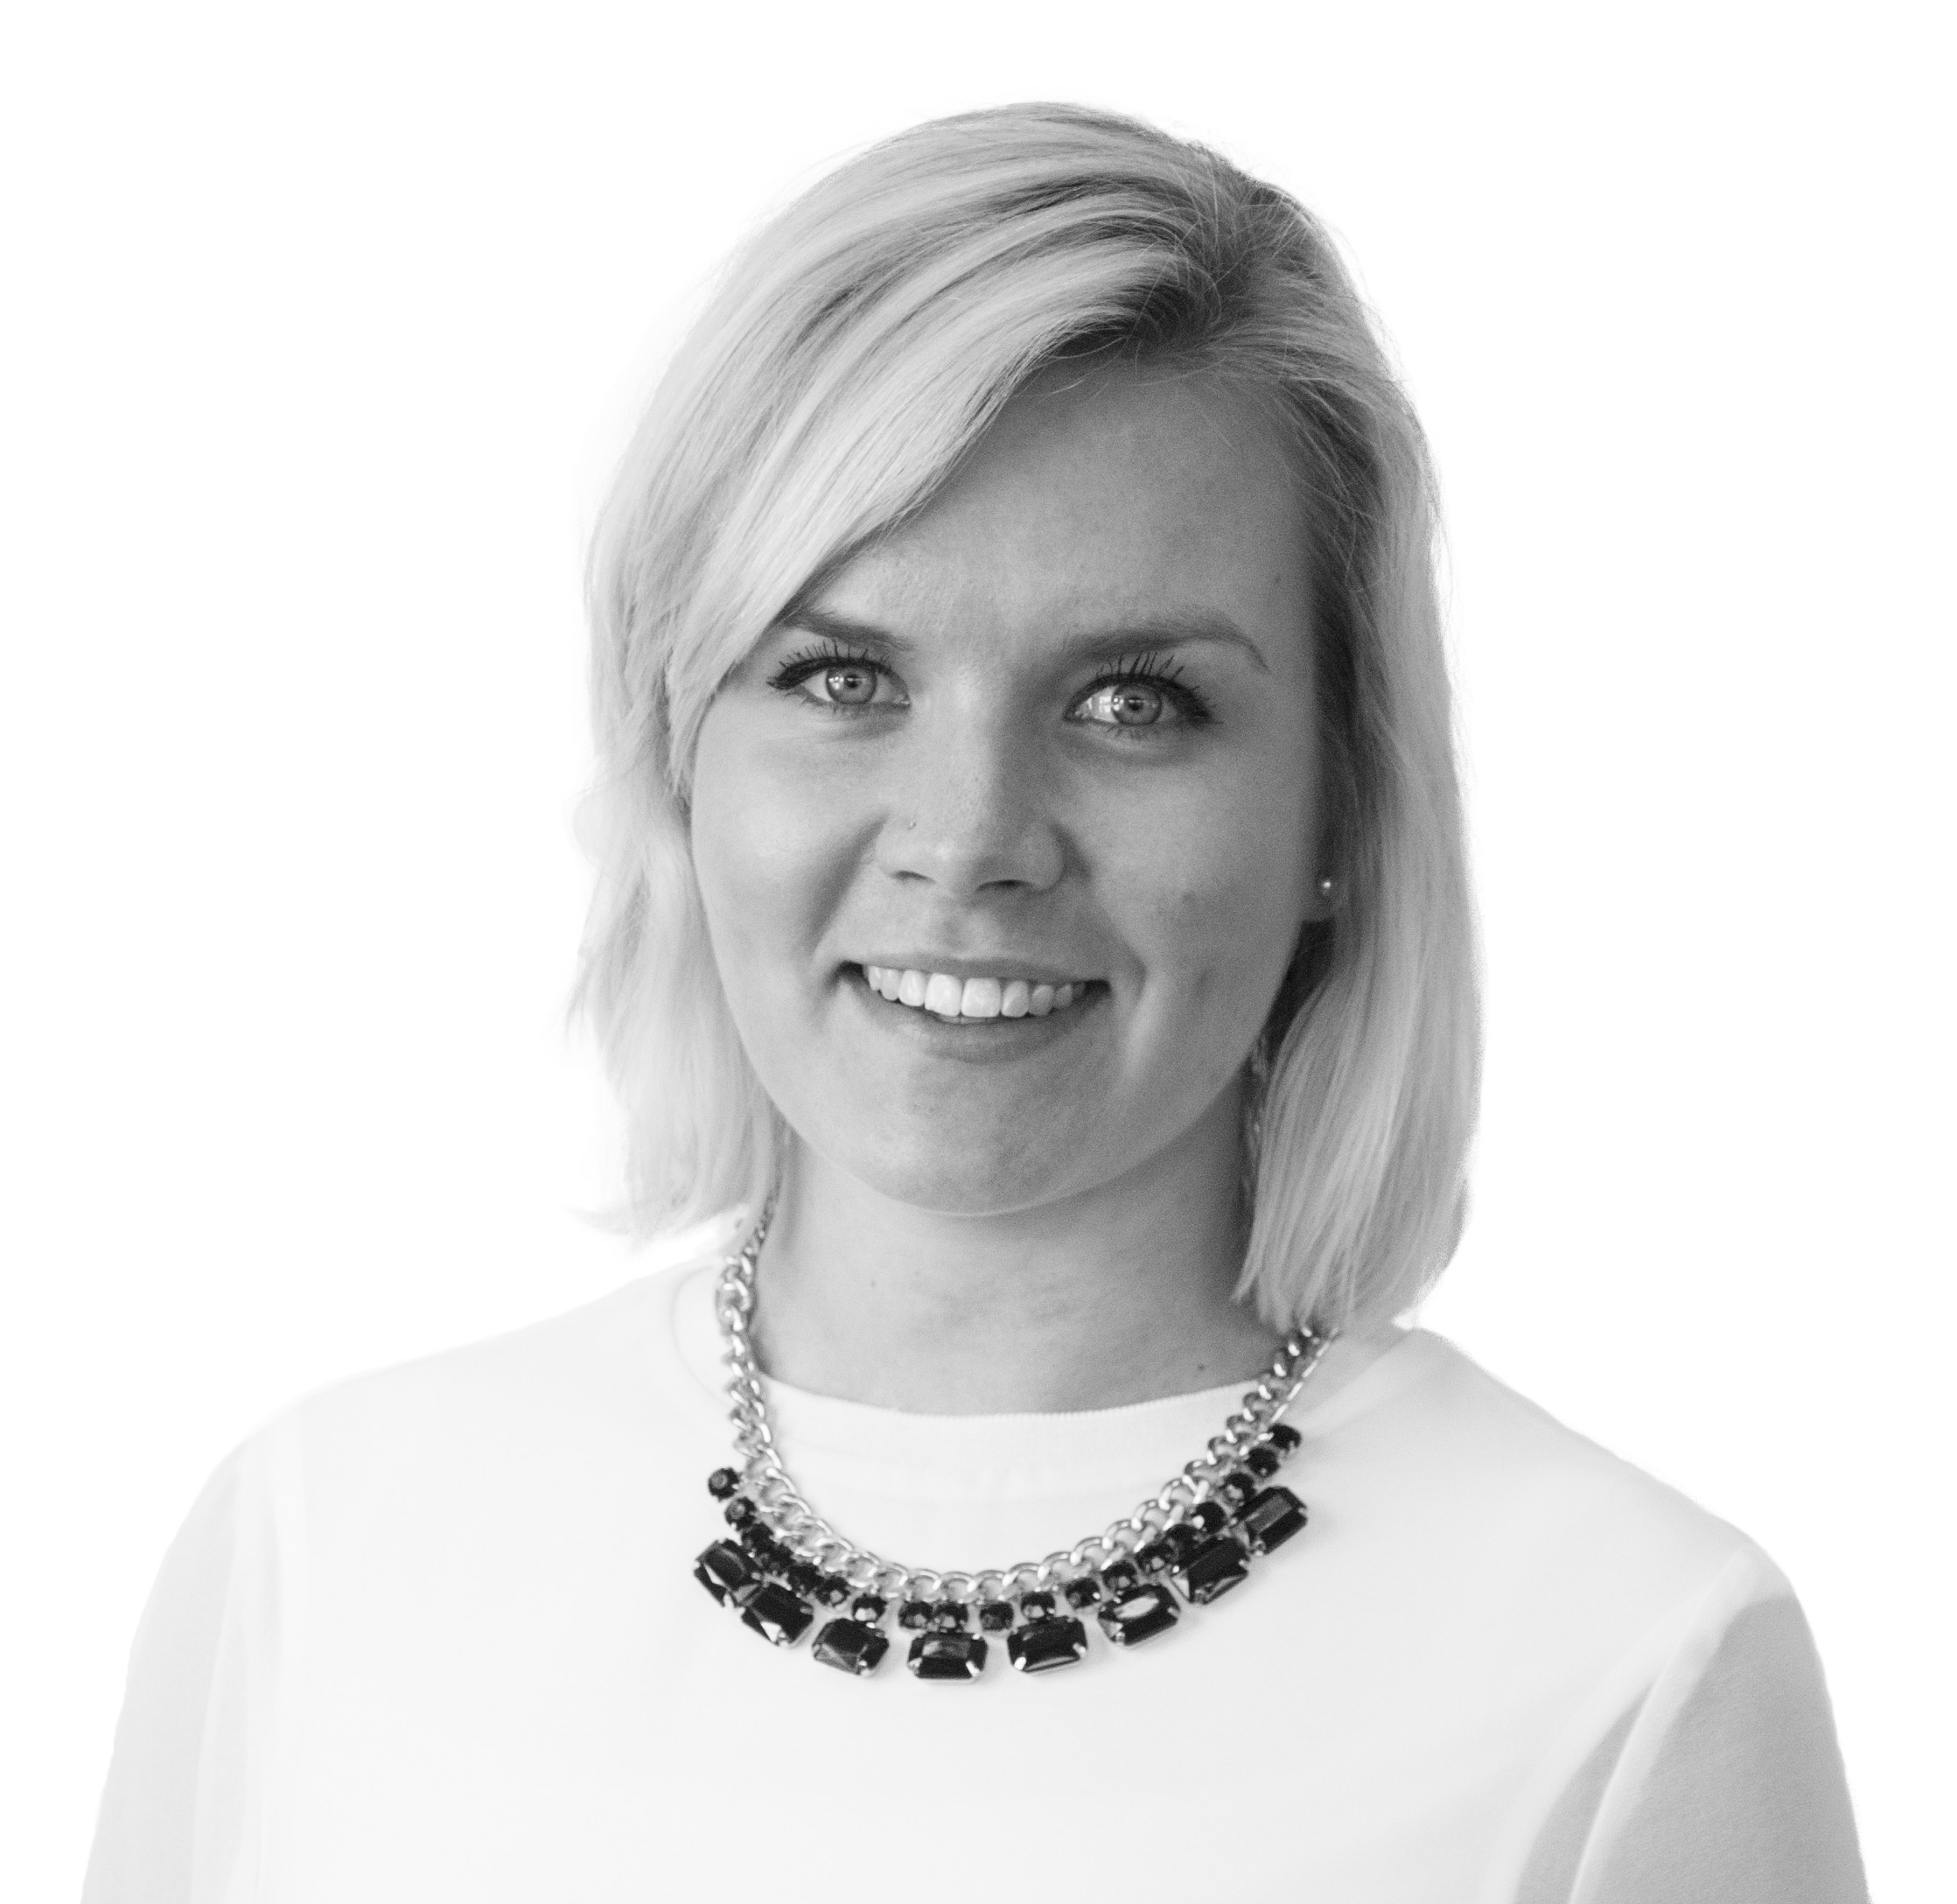 Heli Metsmaa-Petersons   Account Manager at Mubaloo Limited